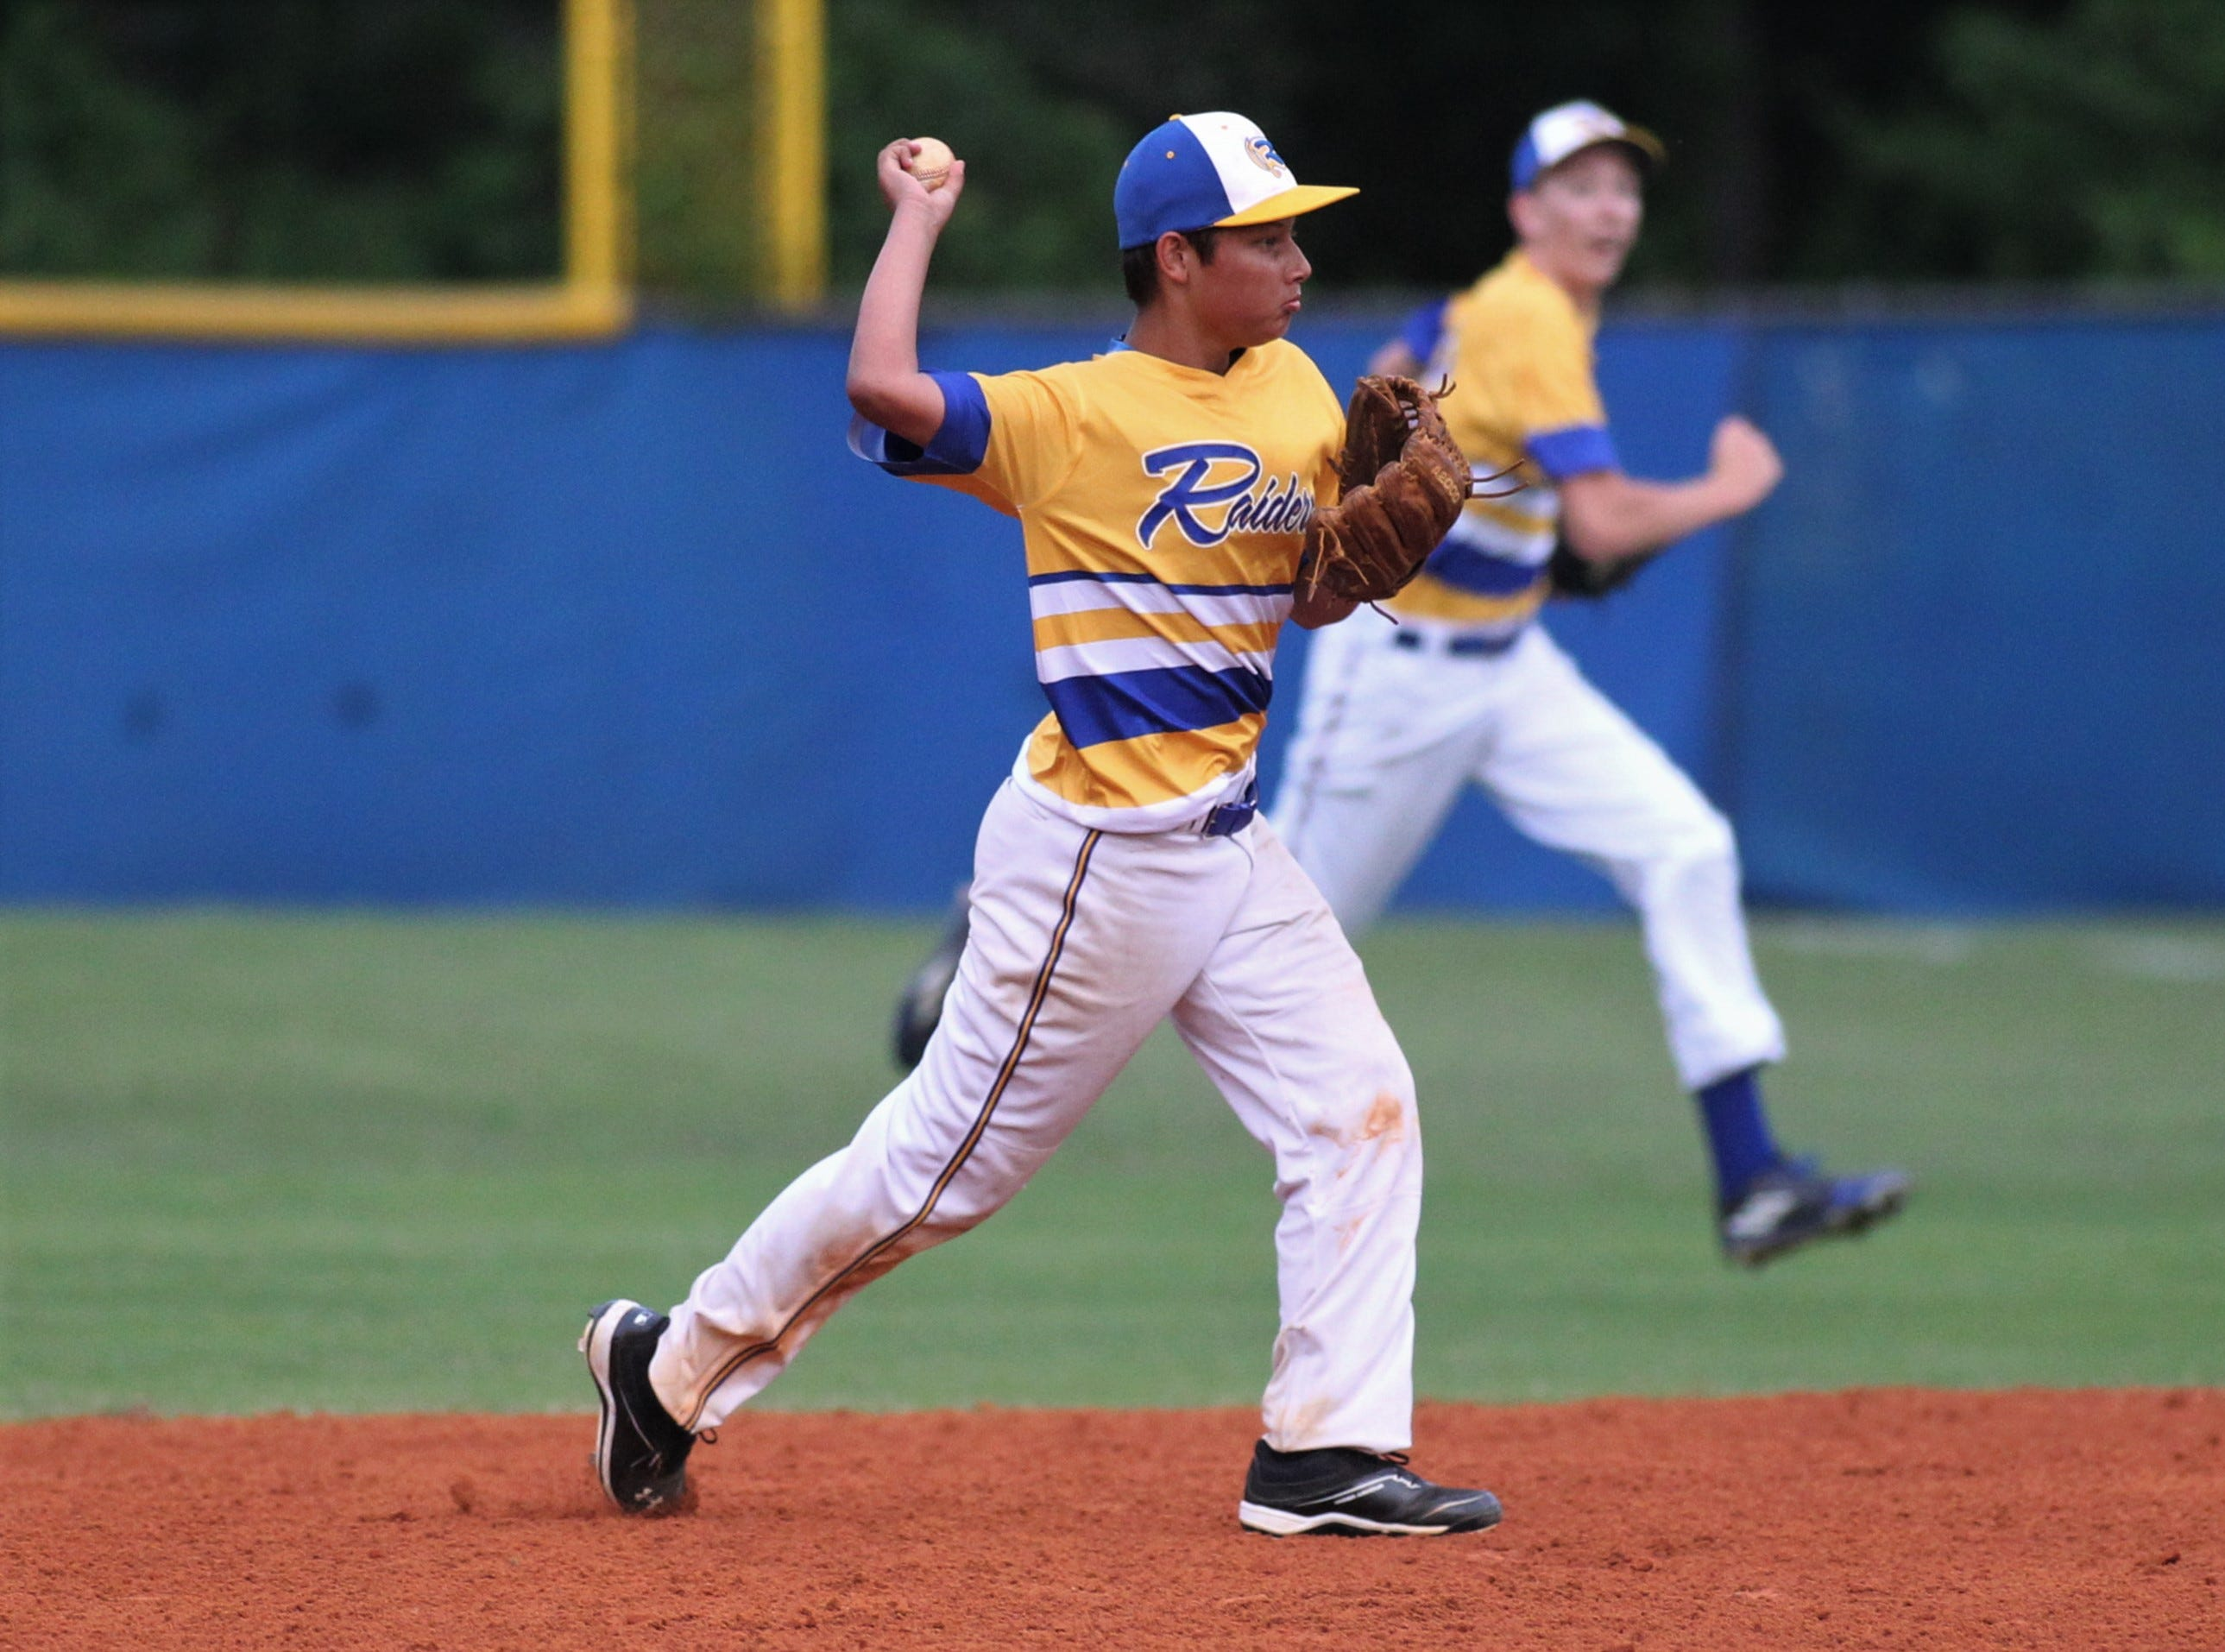 Rickards junior second baseman Dylan Butterfield throws to first for a final out as Rickards beat Gadsden County 18-0 in three innings on Friday, April 12, 2019.